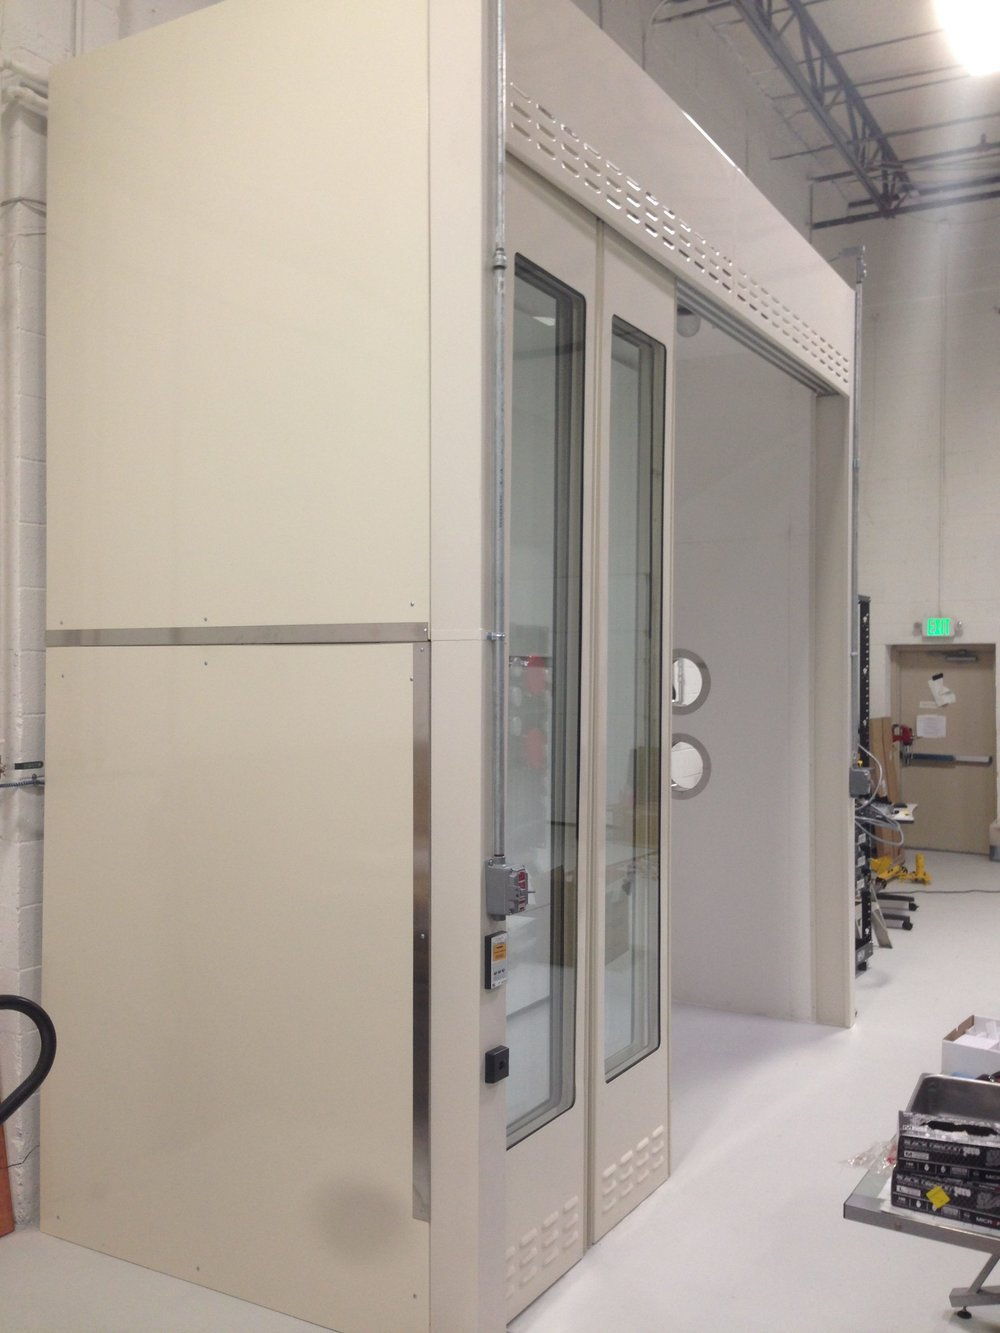 Whiting School of Engineering Customized Fume hood